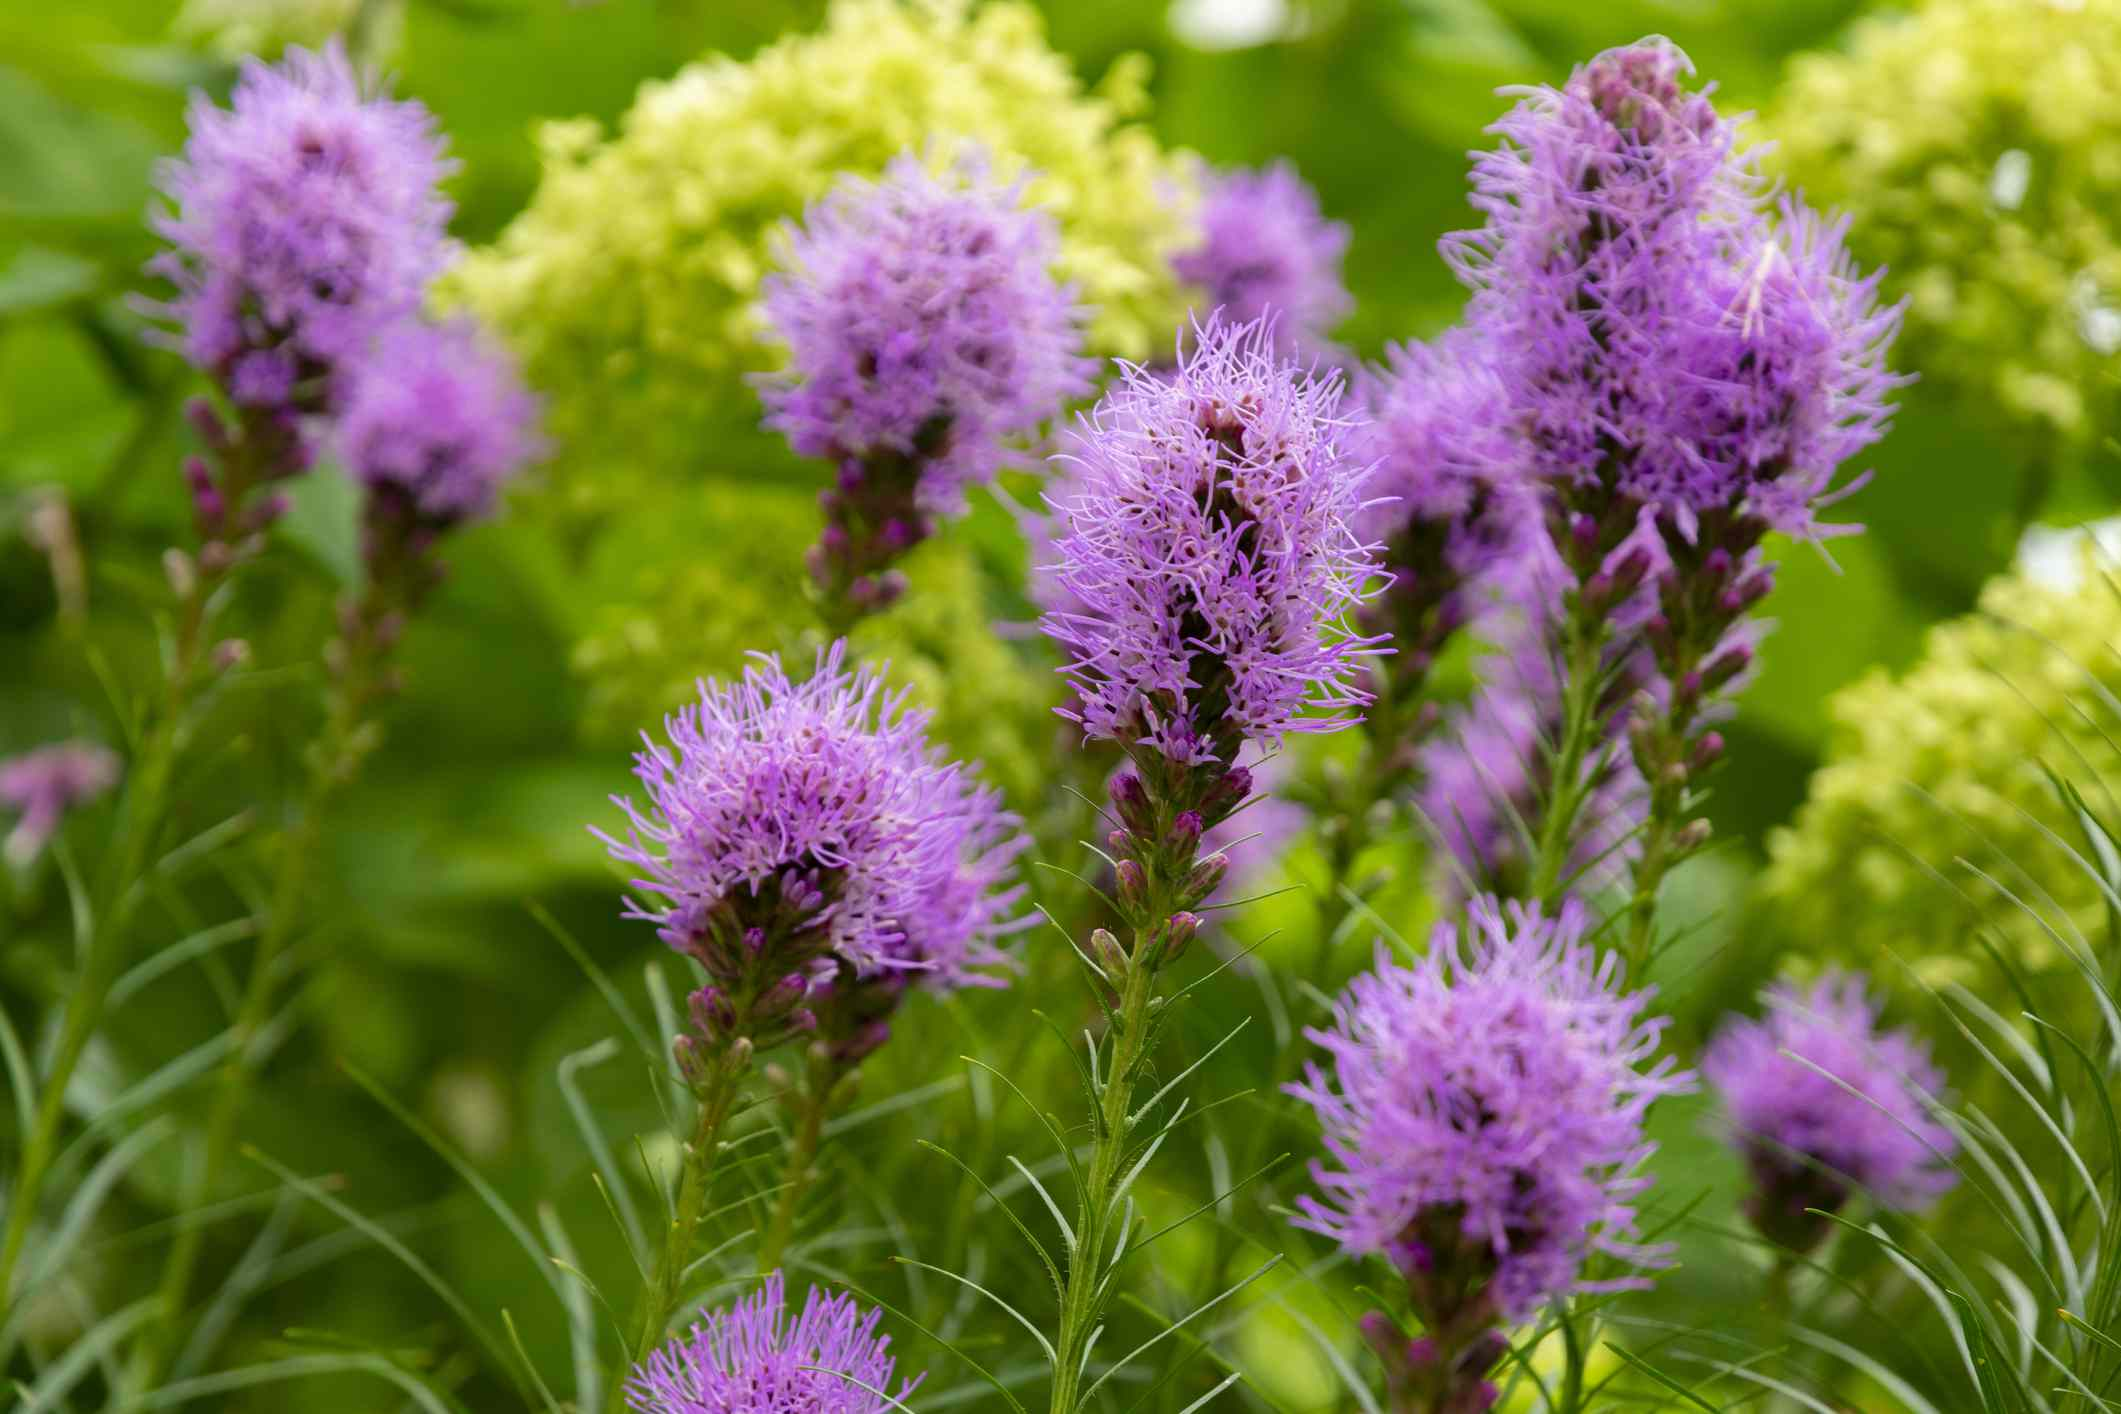 Purple Liatris spicata flowers with green leaves background, close up image. Summer flowers in Japan.